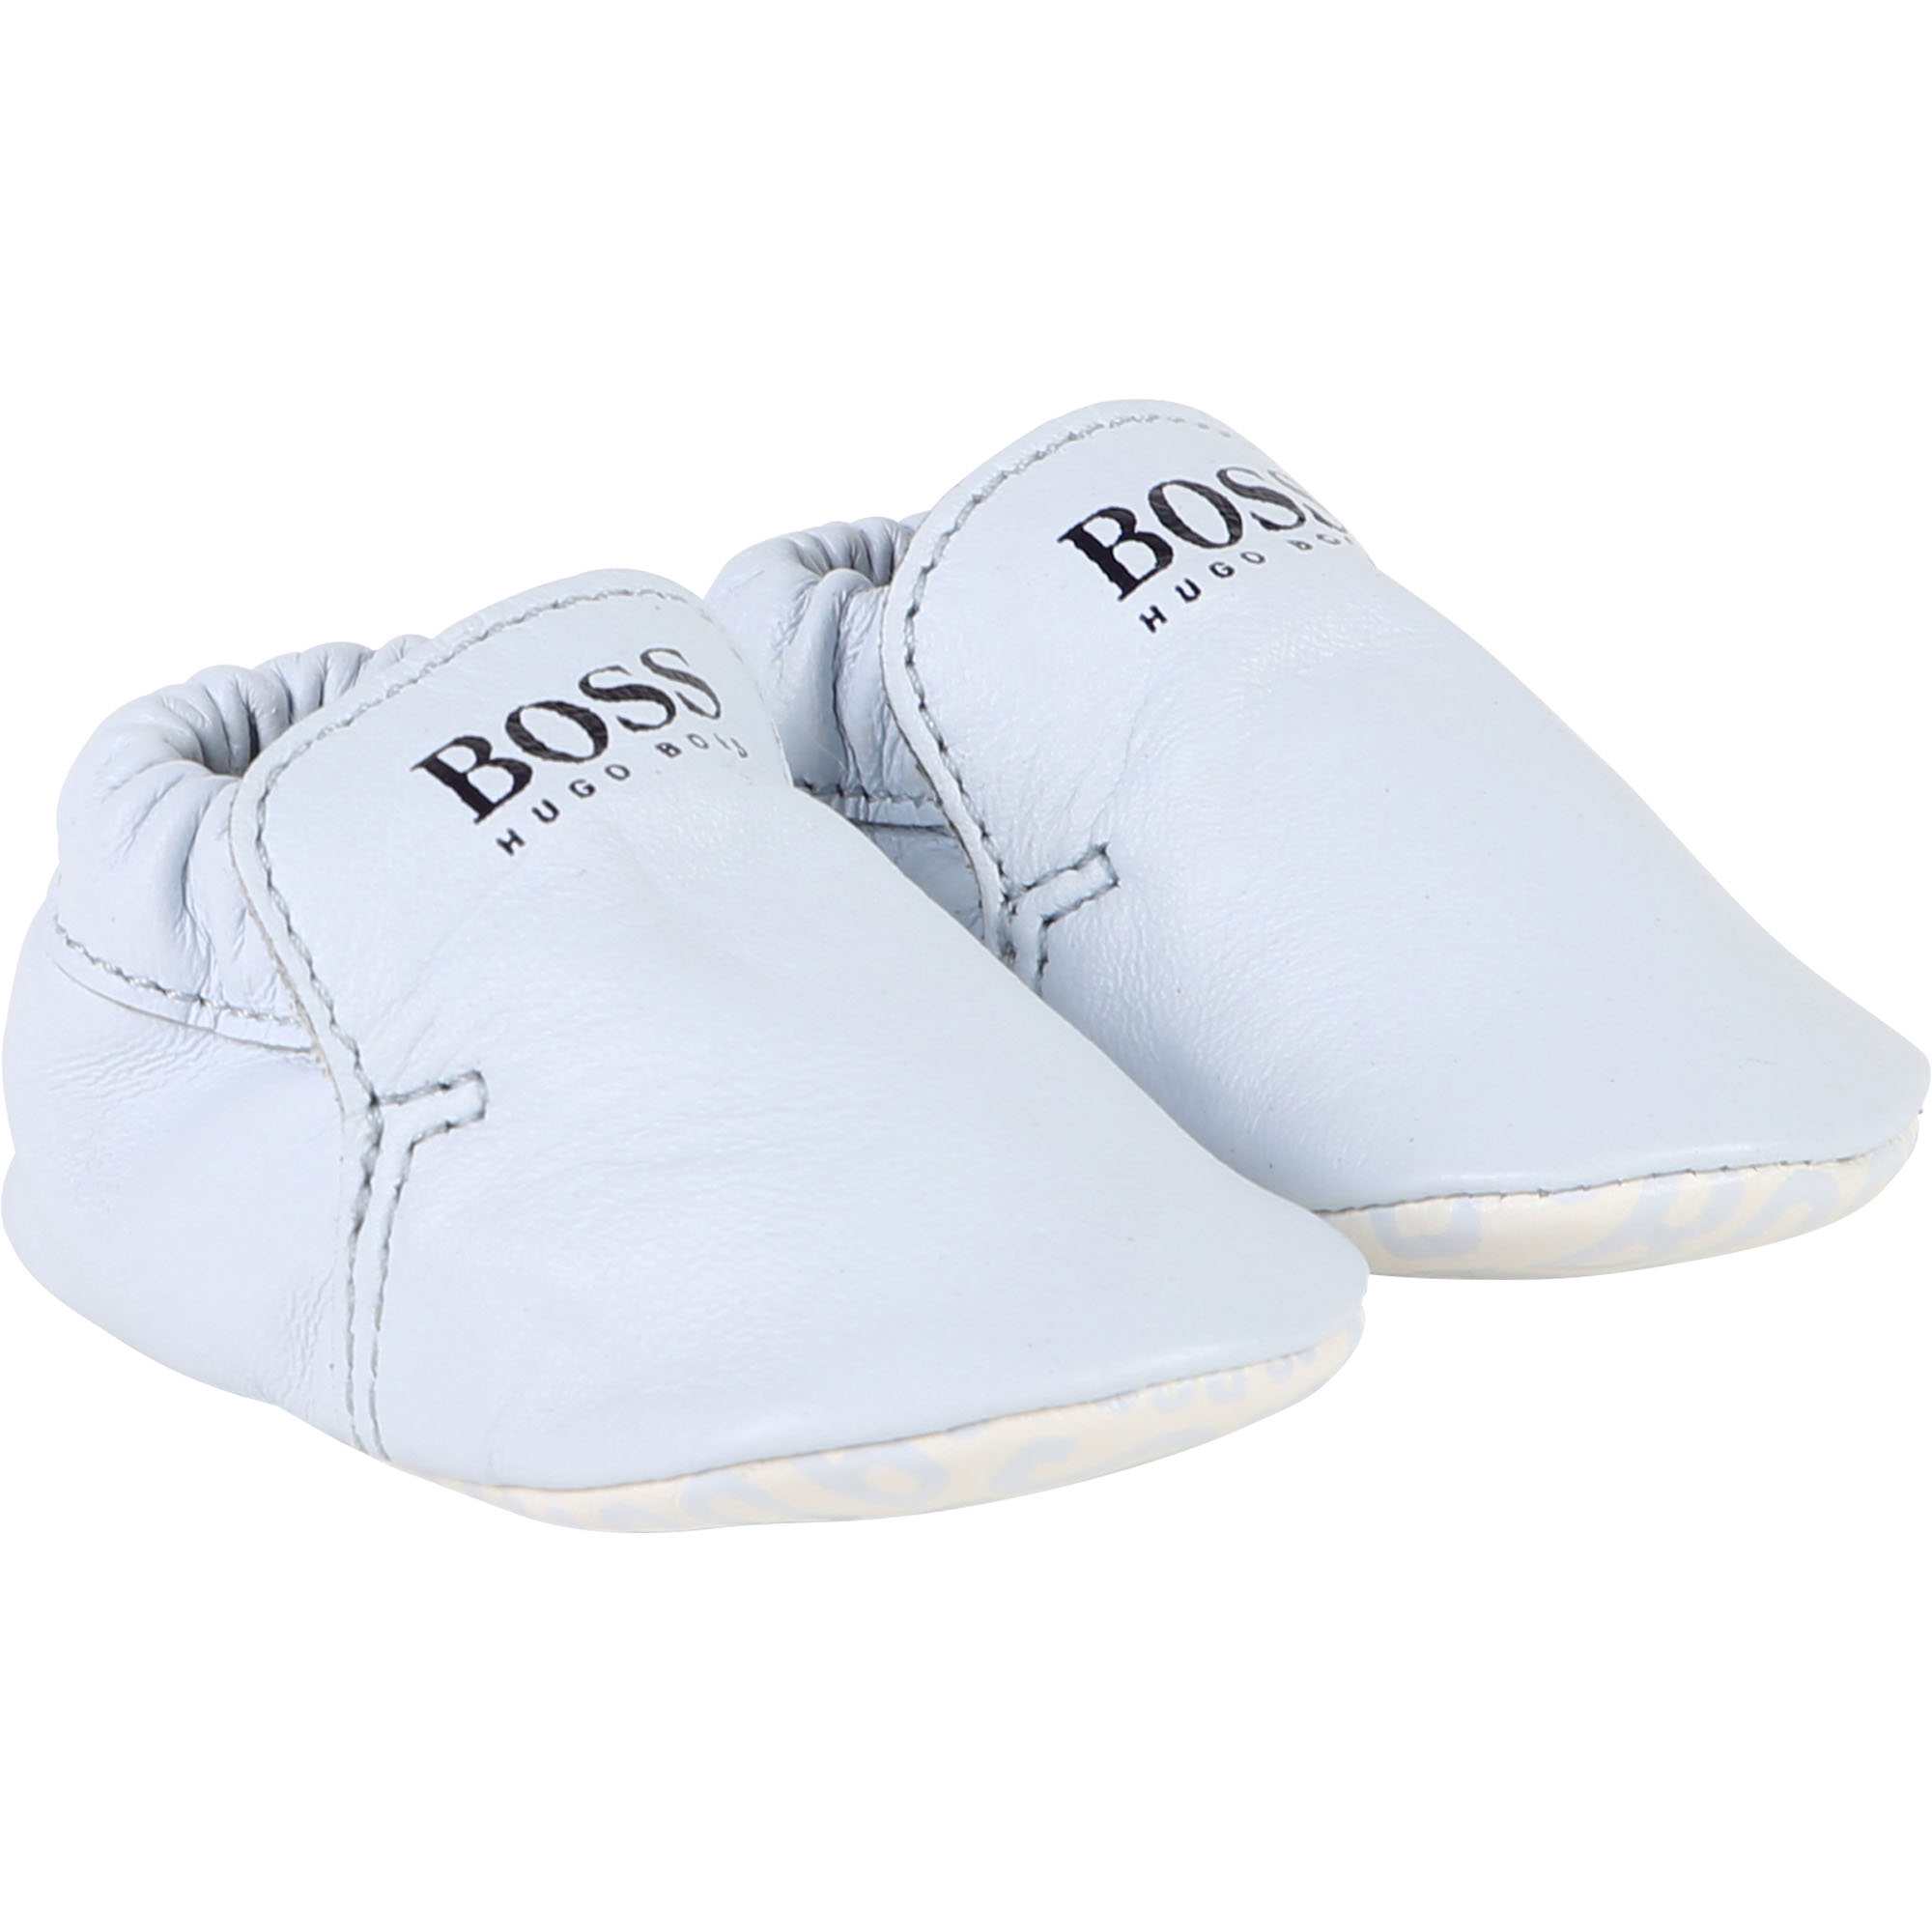 Hugo Boss baby shoes of leather in light-blue